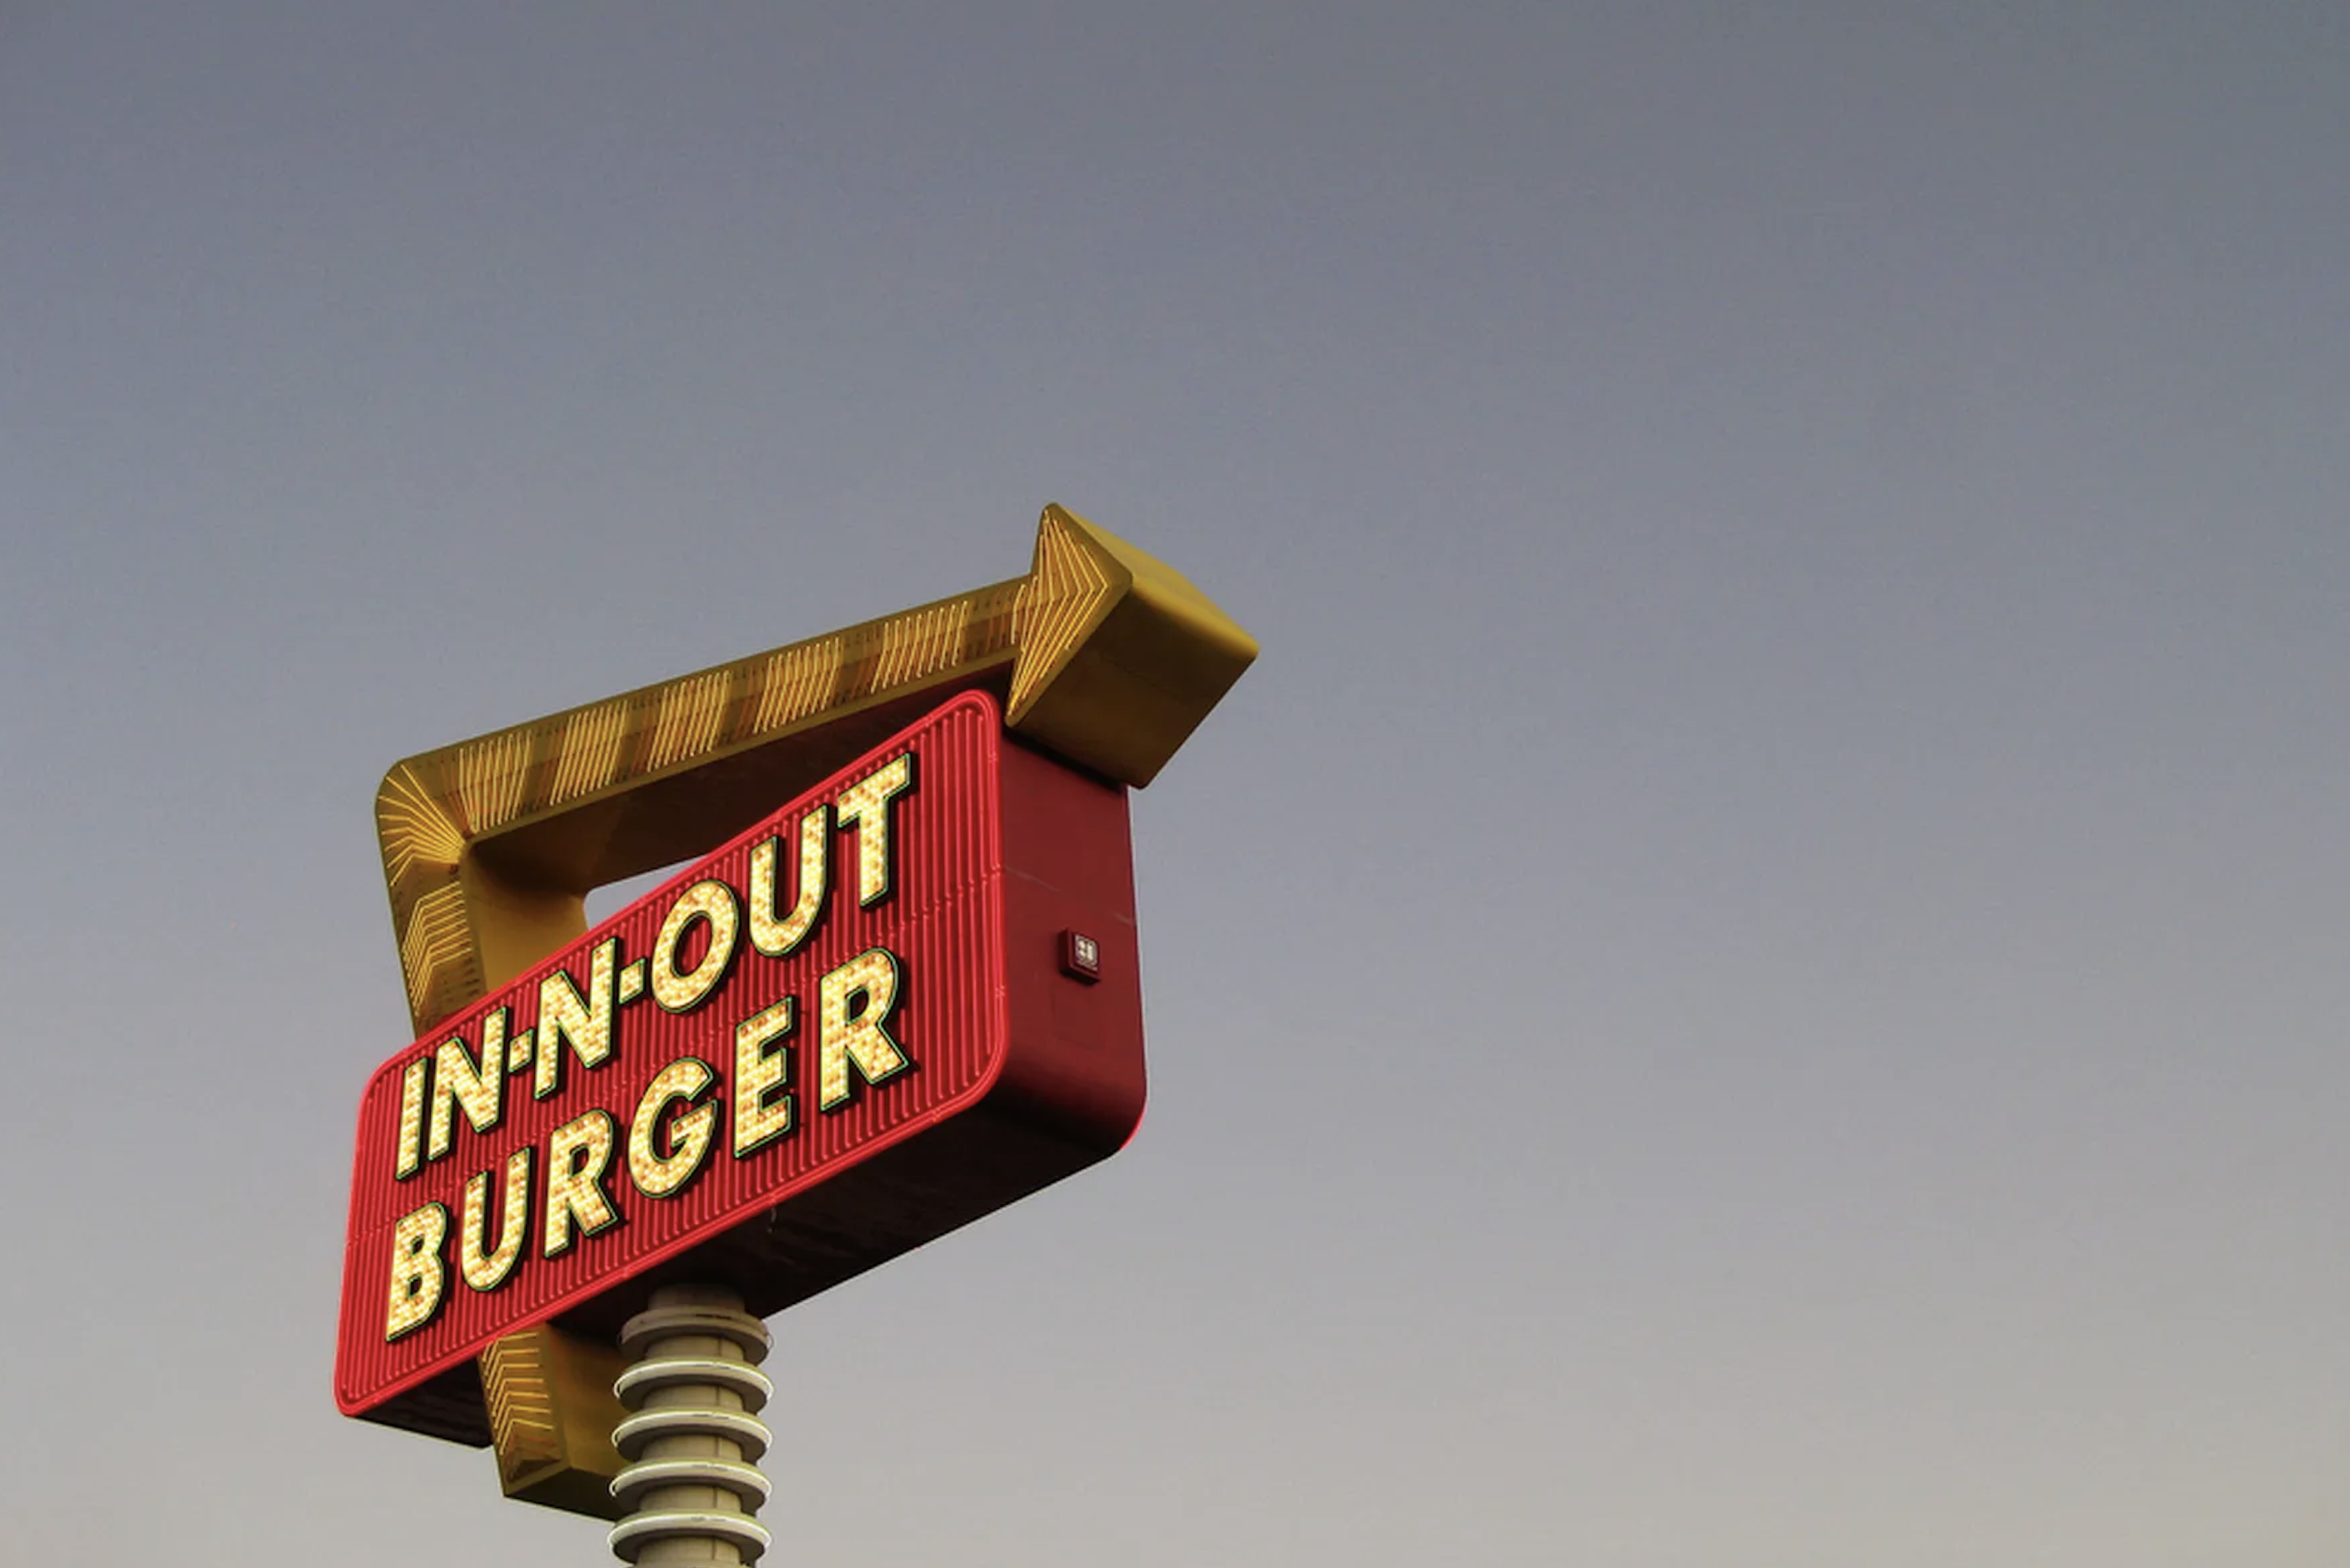 innoutme2